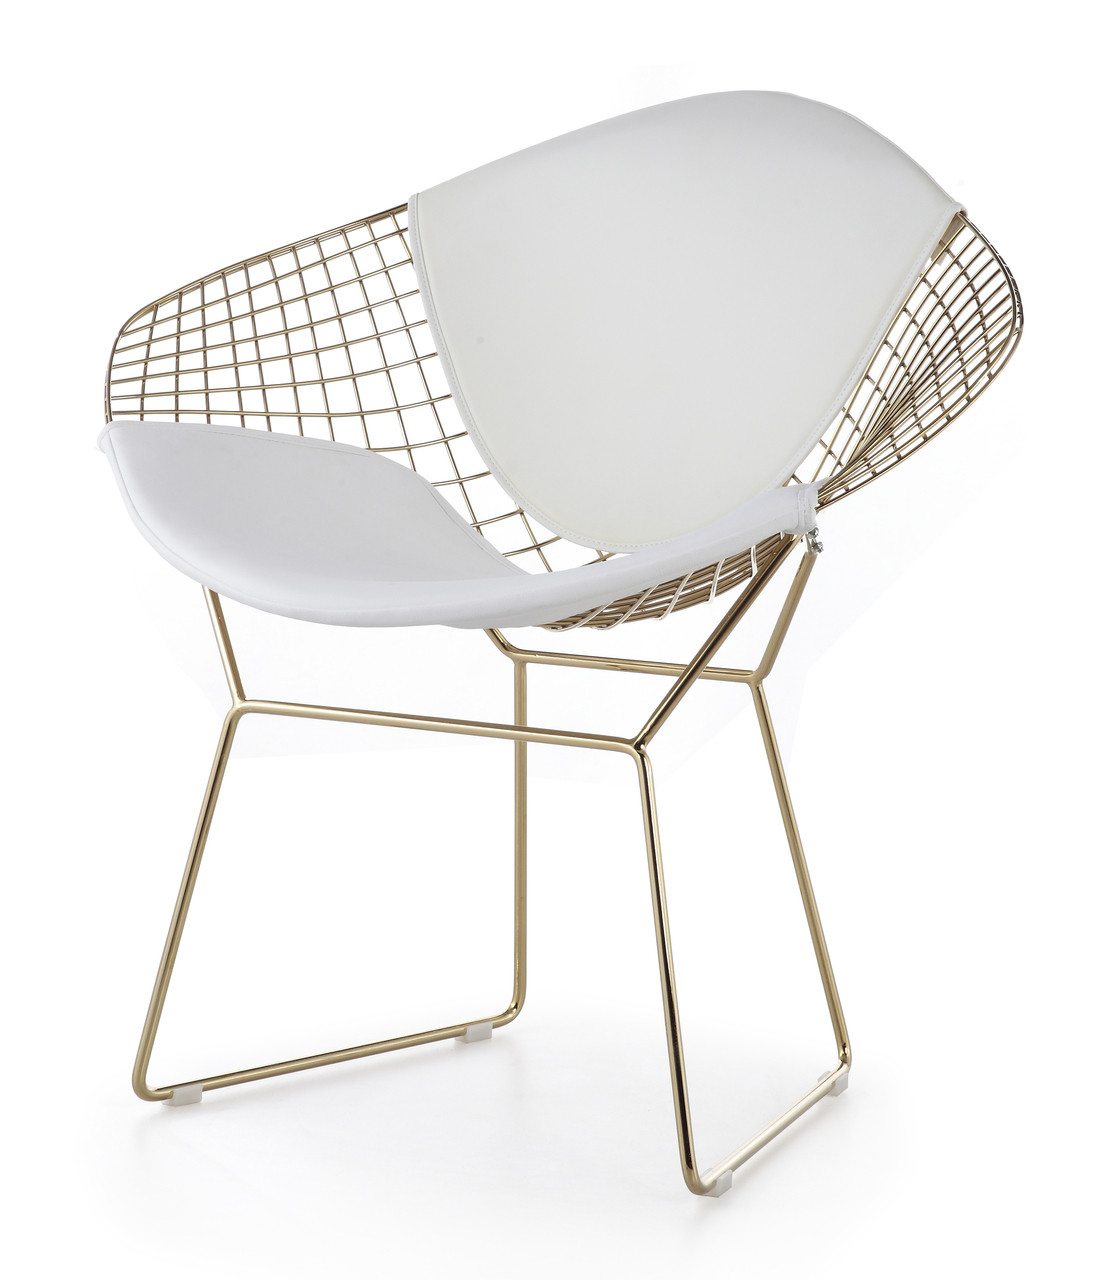 bertoia diamond chair in gold. Black Bedroom Furniture Sets. Home Design Ideas